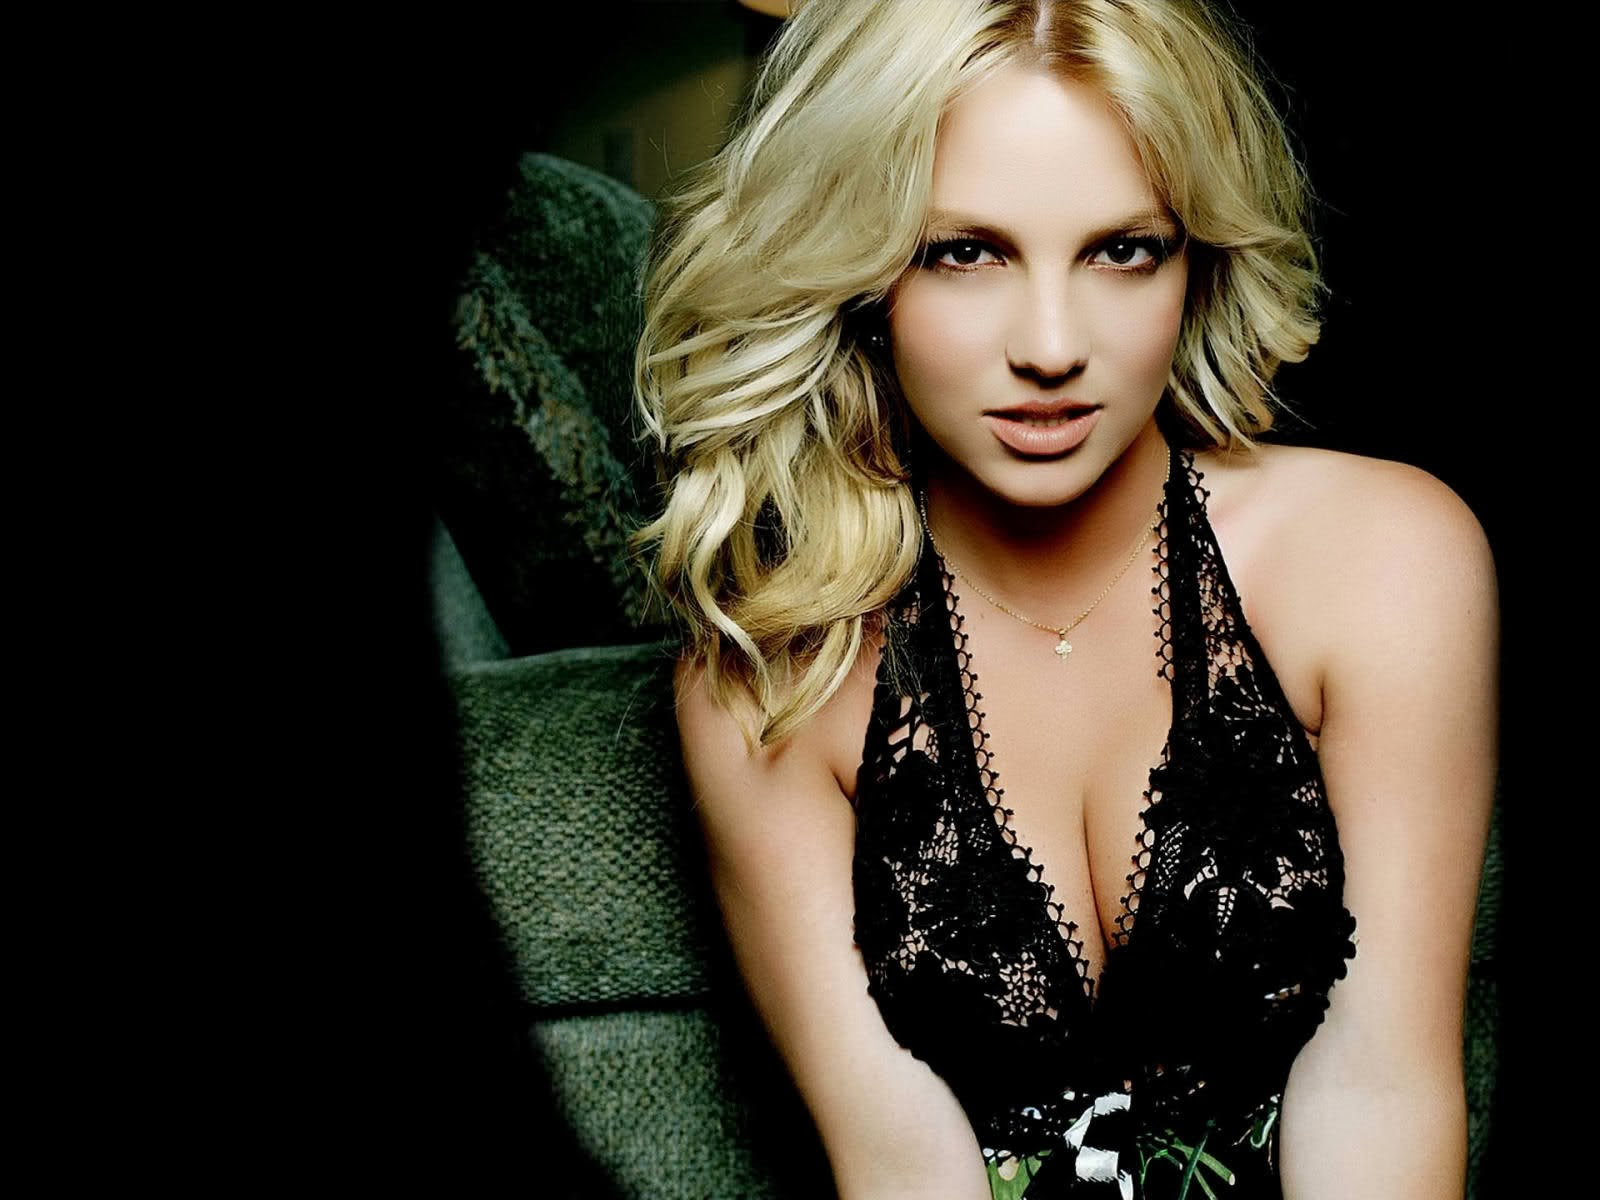 Britney+Spears+Hd+Wallpapers+Free+Download001